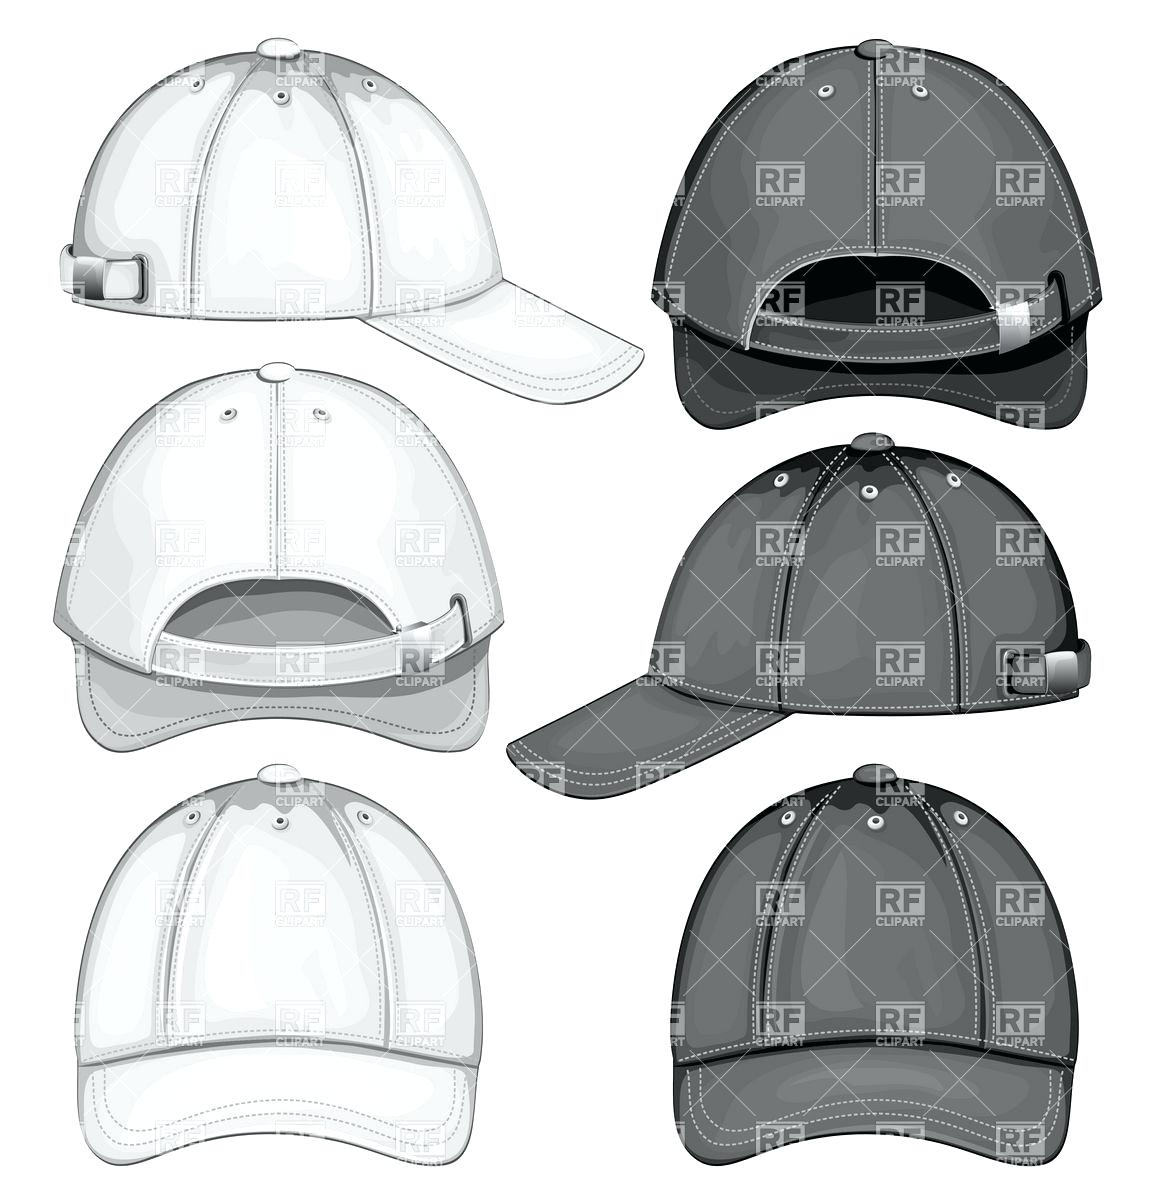 1155x1200 Template Cap Template Blank Of Baseball Front Back And Side View